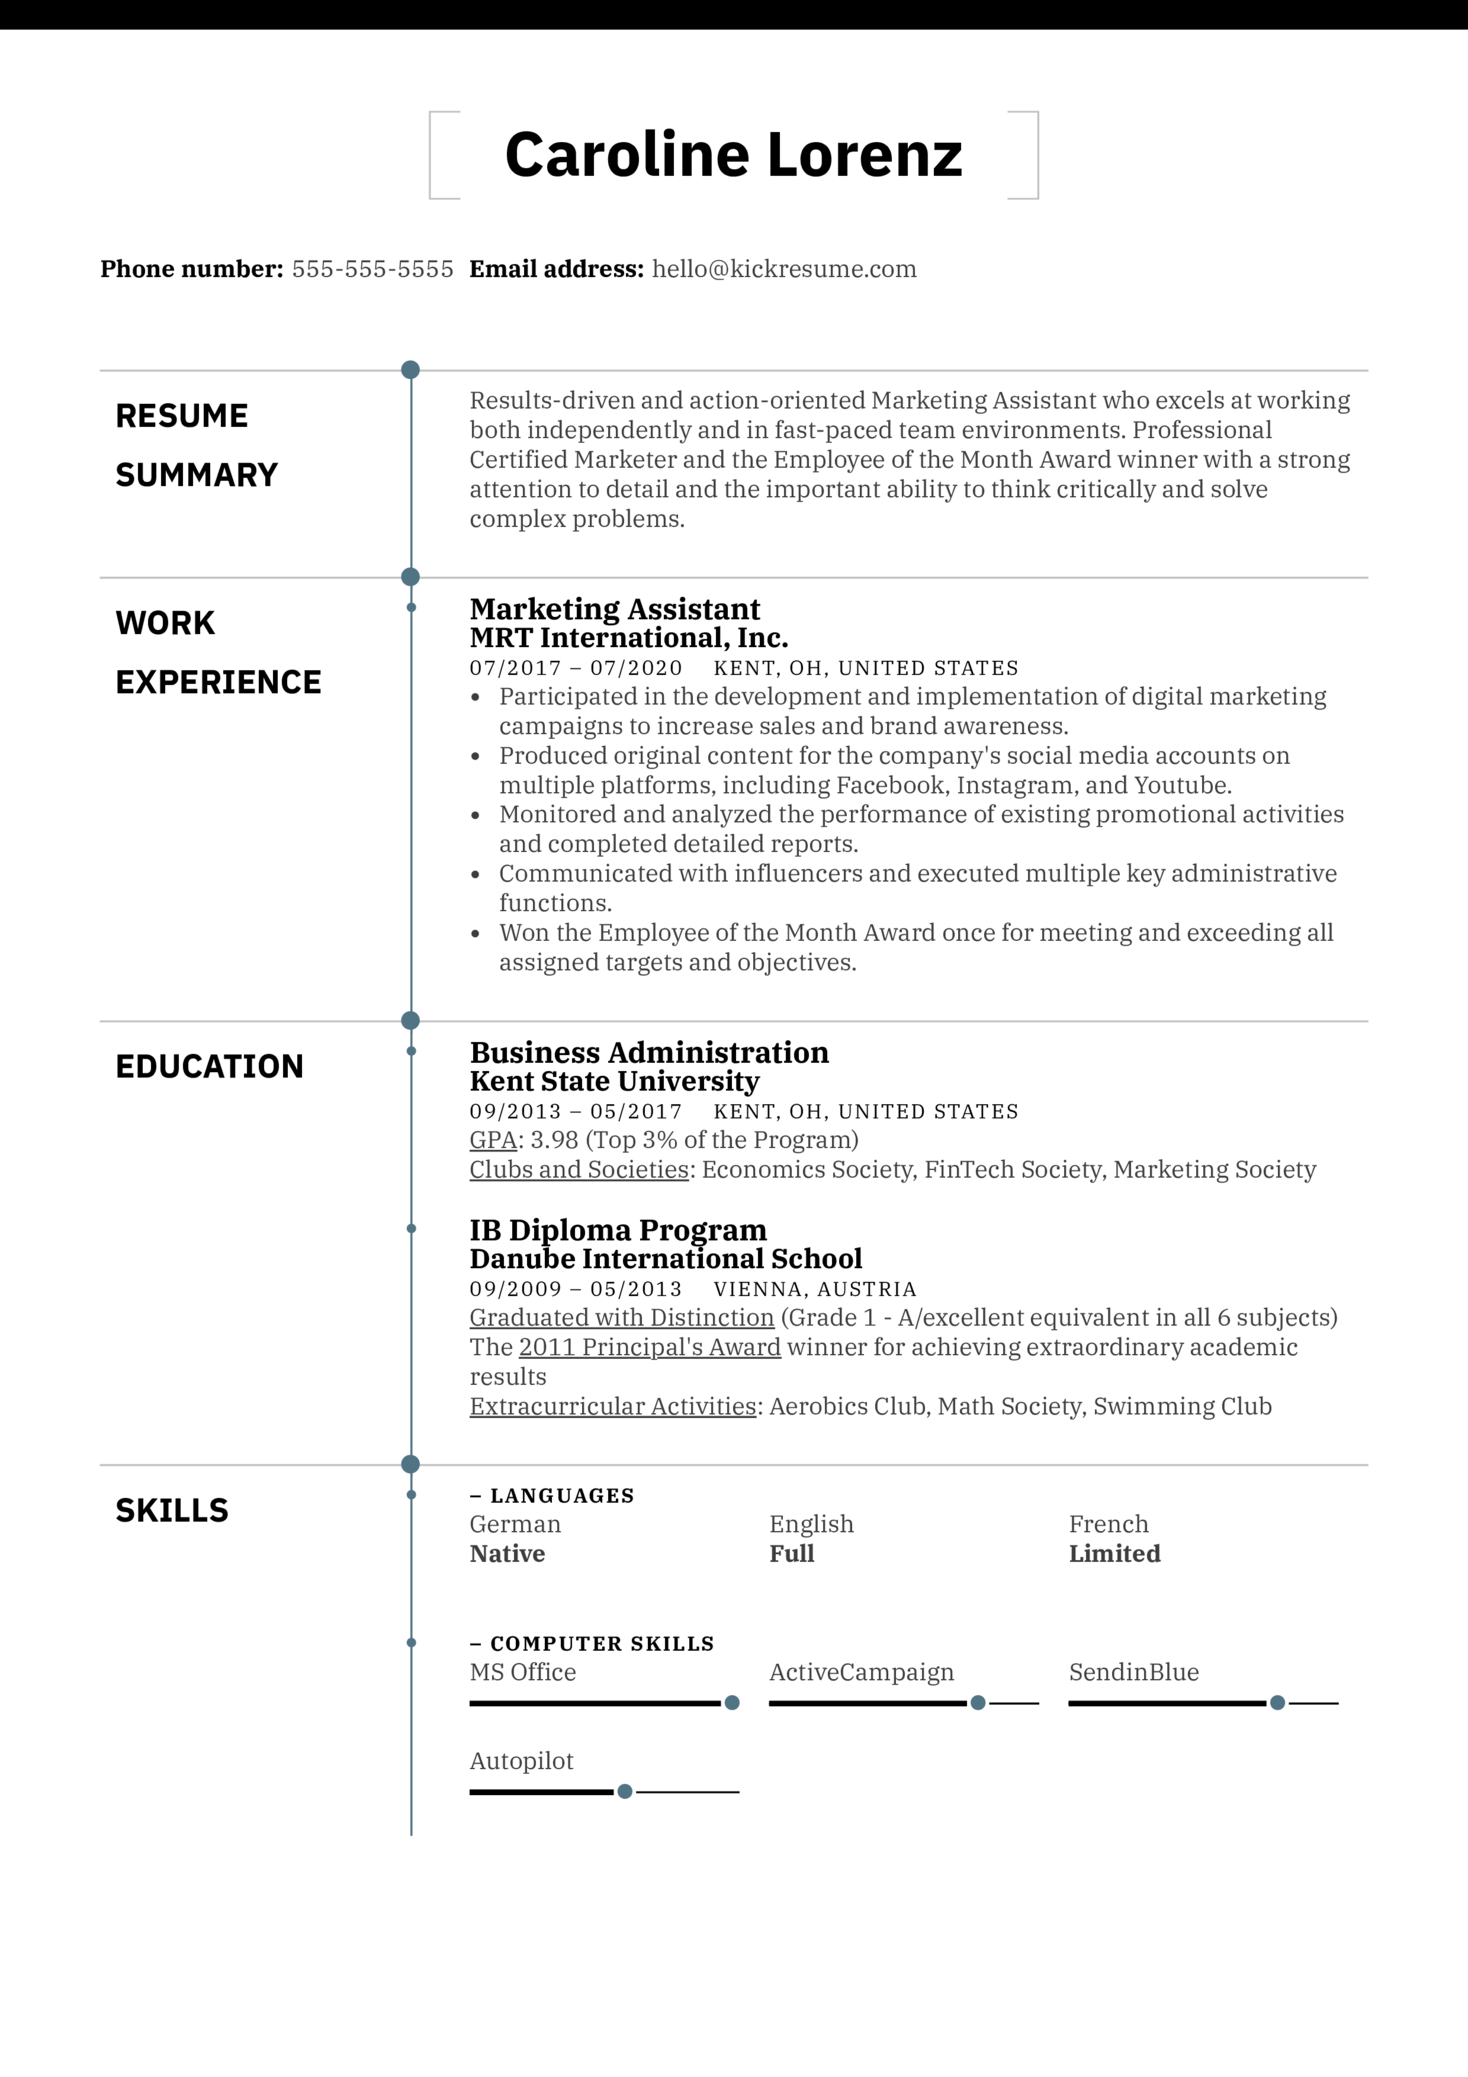 Professional Resume Example (Part 1)